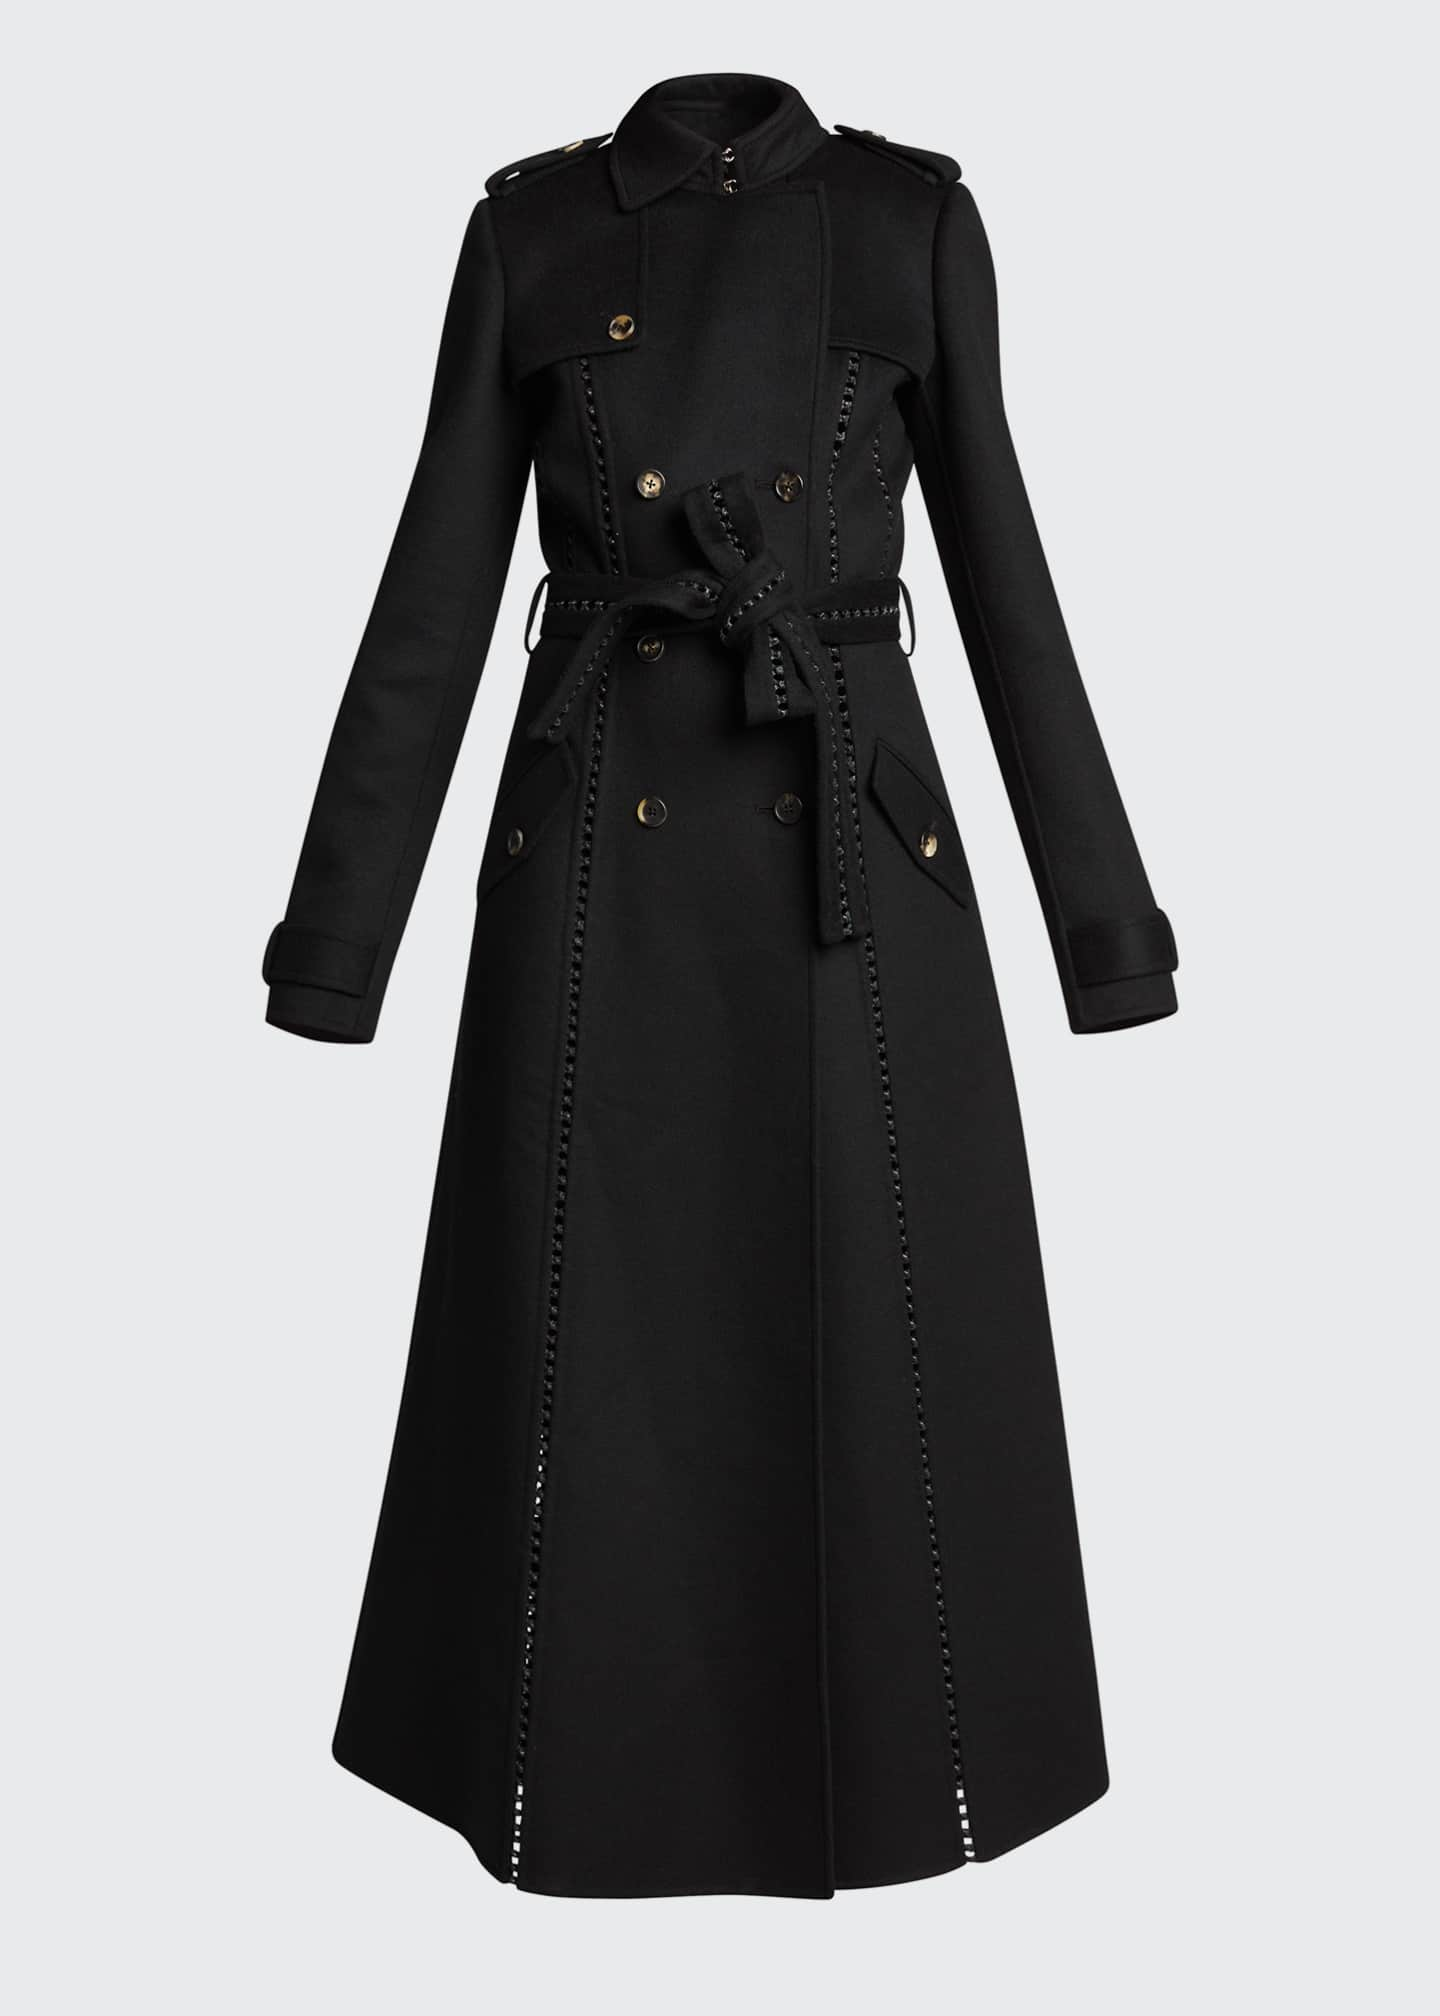 Image 5 of 5: Franz Knotted Cashmere Lace-Up Trench Coat